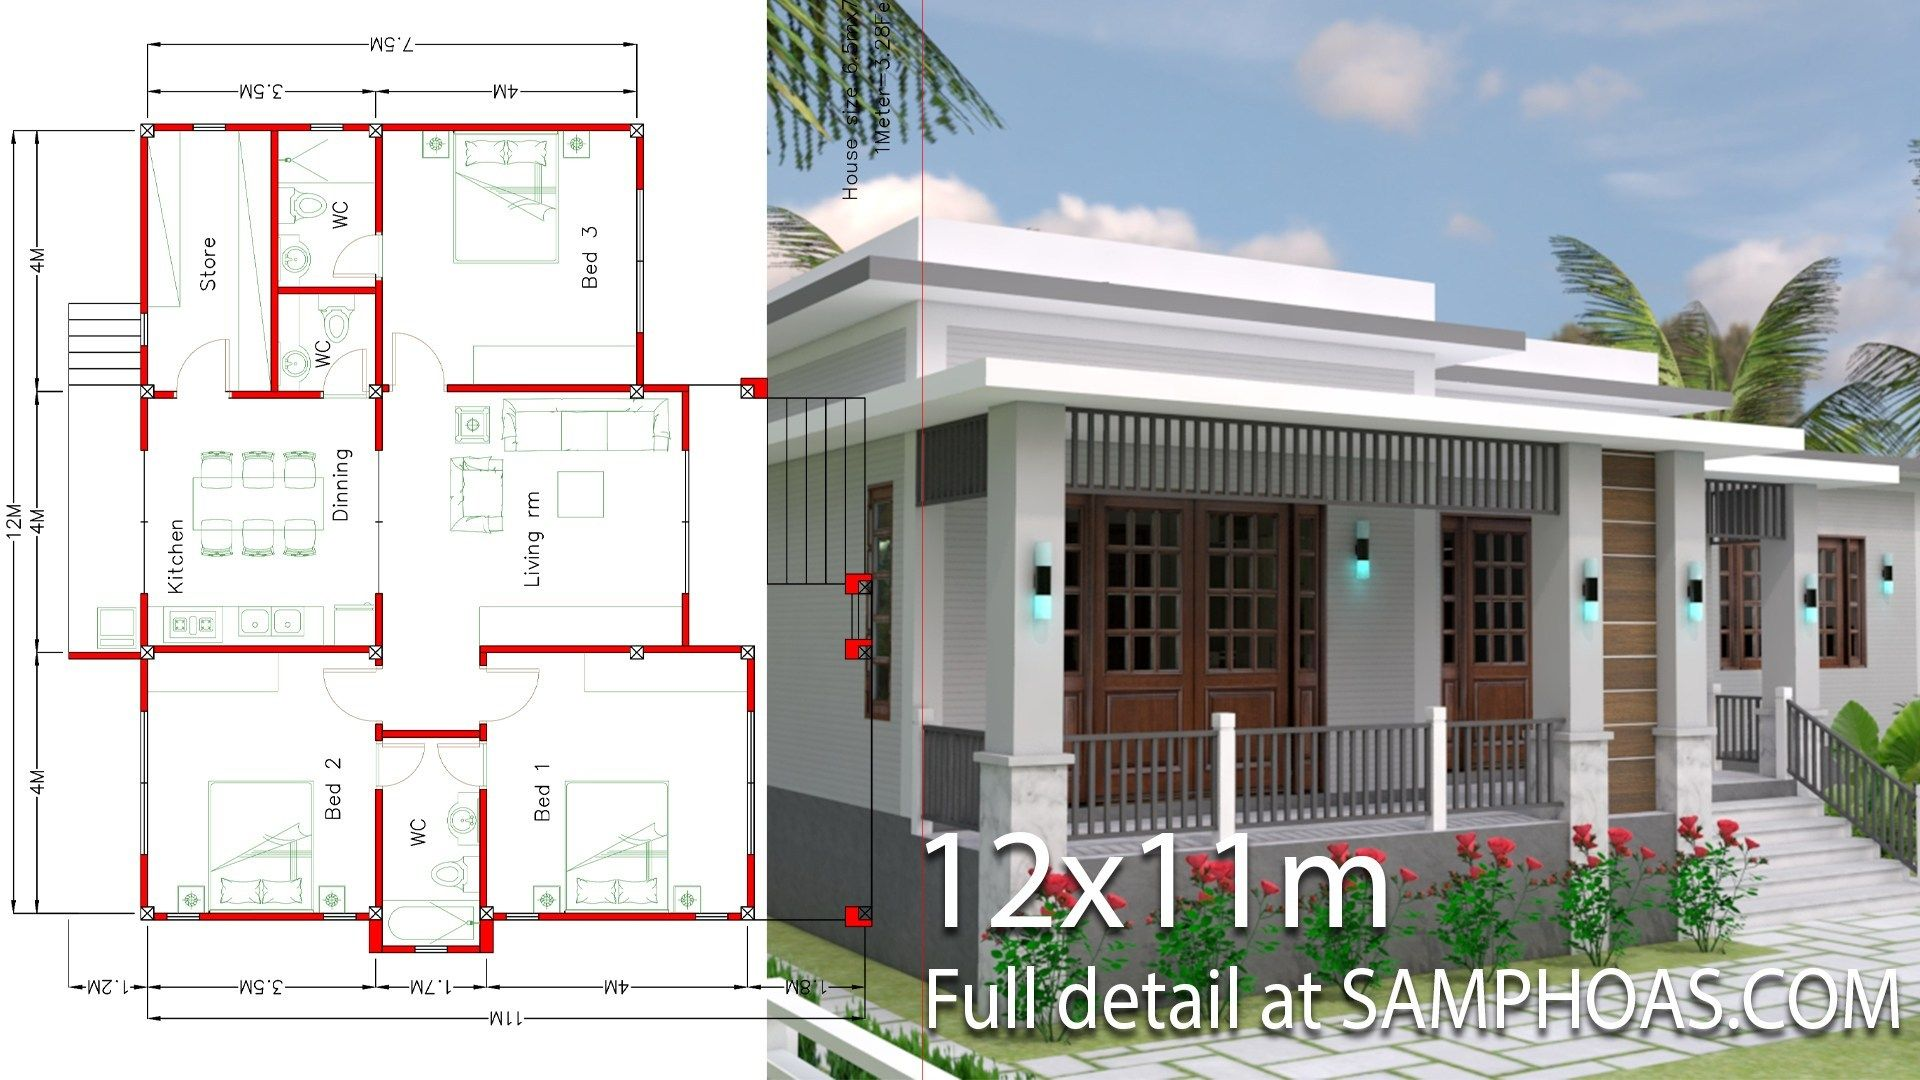 House Design With Full Plan 12x11m 3 Bedrooms Simple Home Design 12x11m Description Ground Simple House Design Beautiful House Plans Architectural House Plans